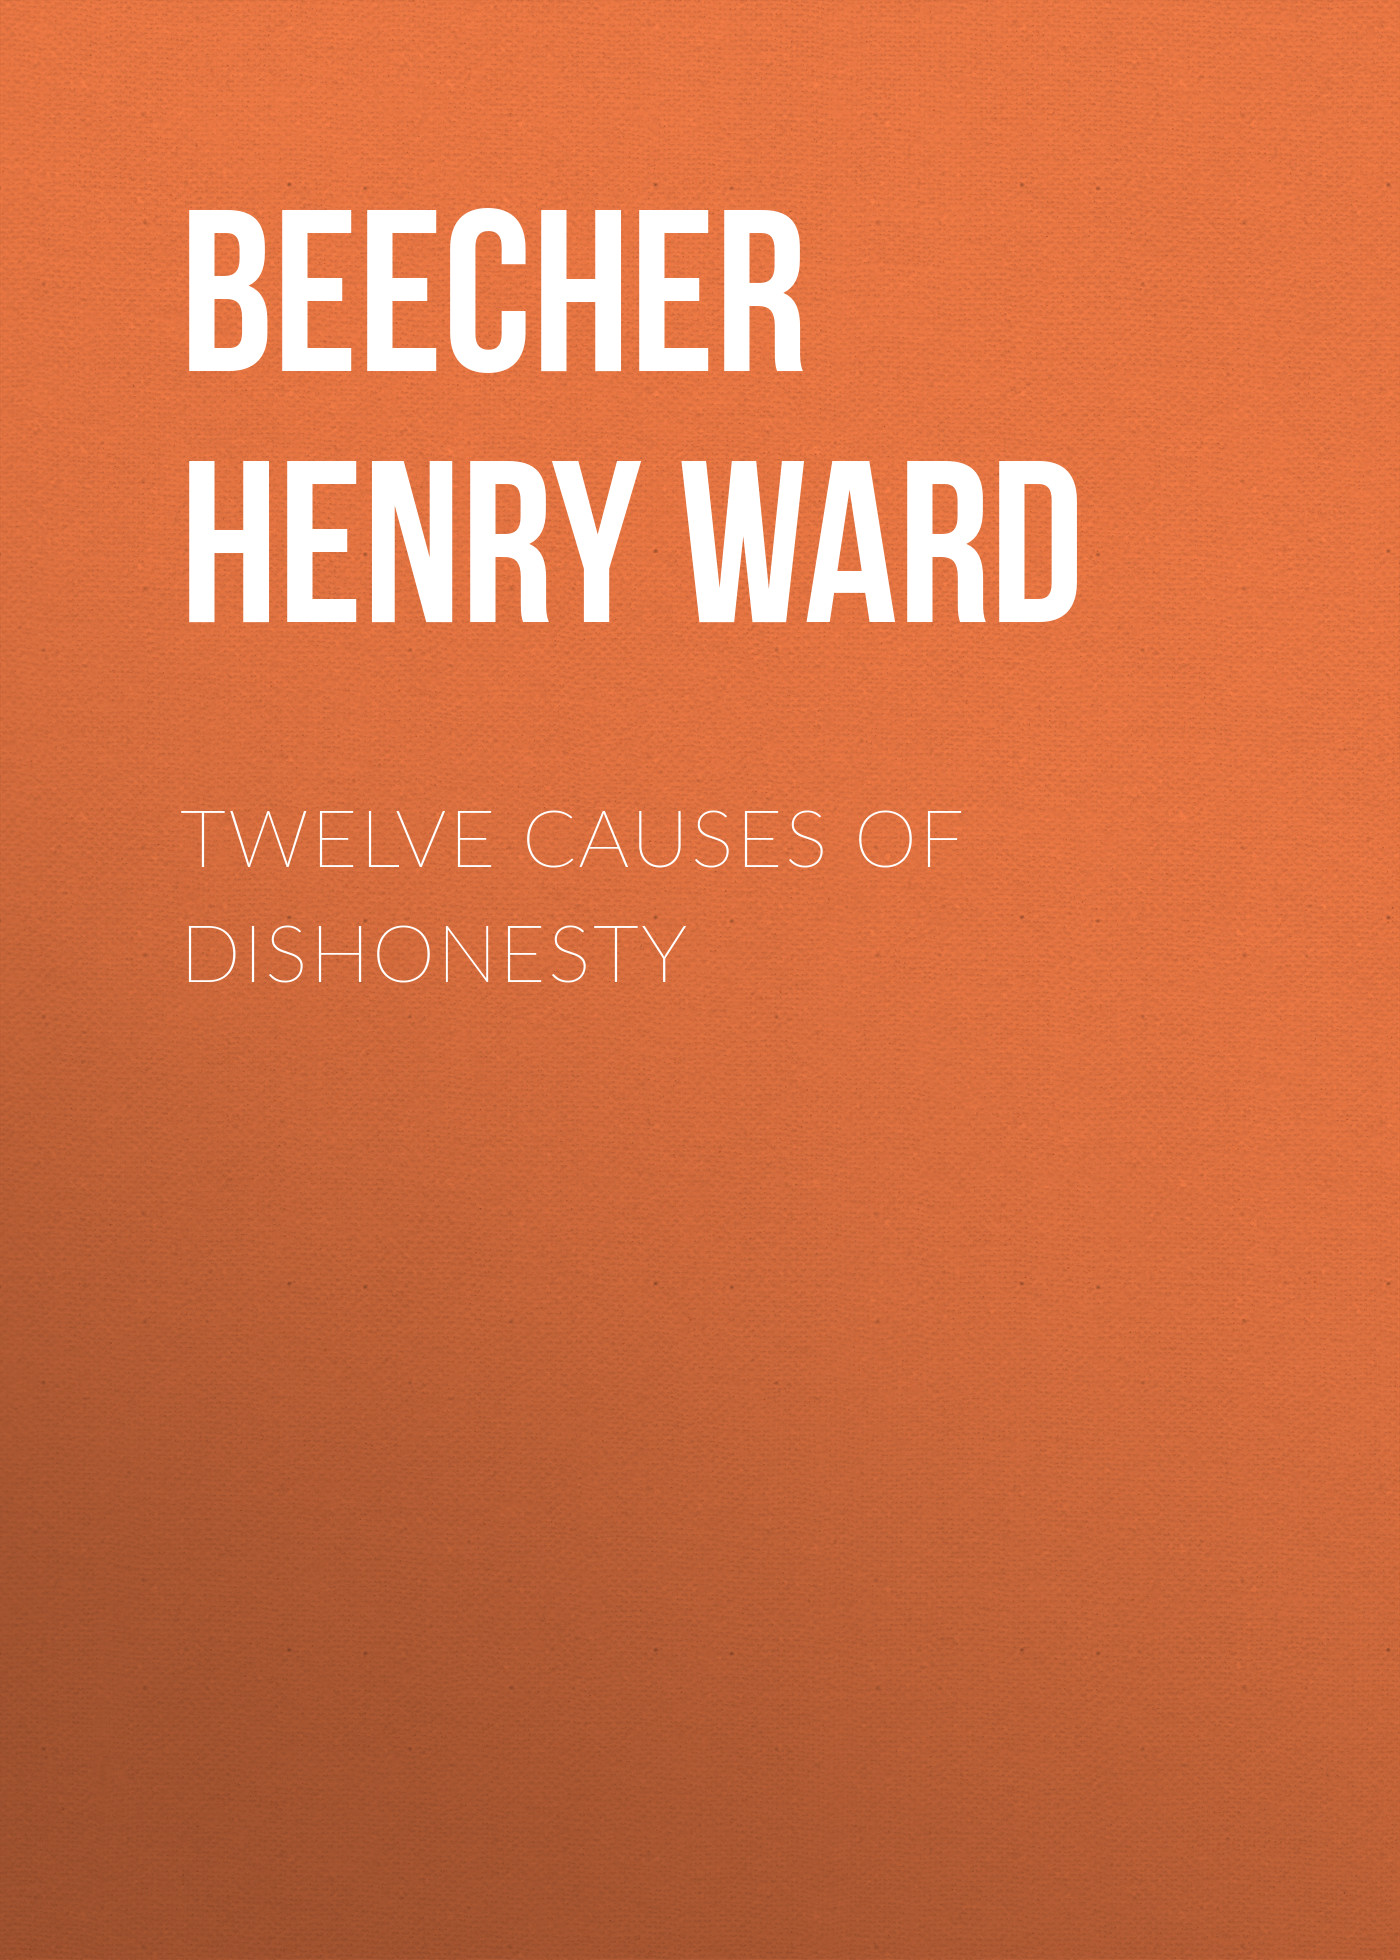 Beecher Henry Ward Twelve Causes of Dishonesty